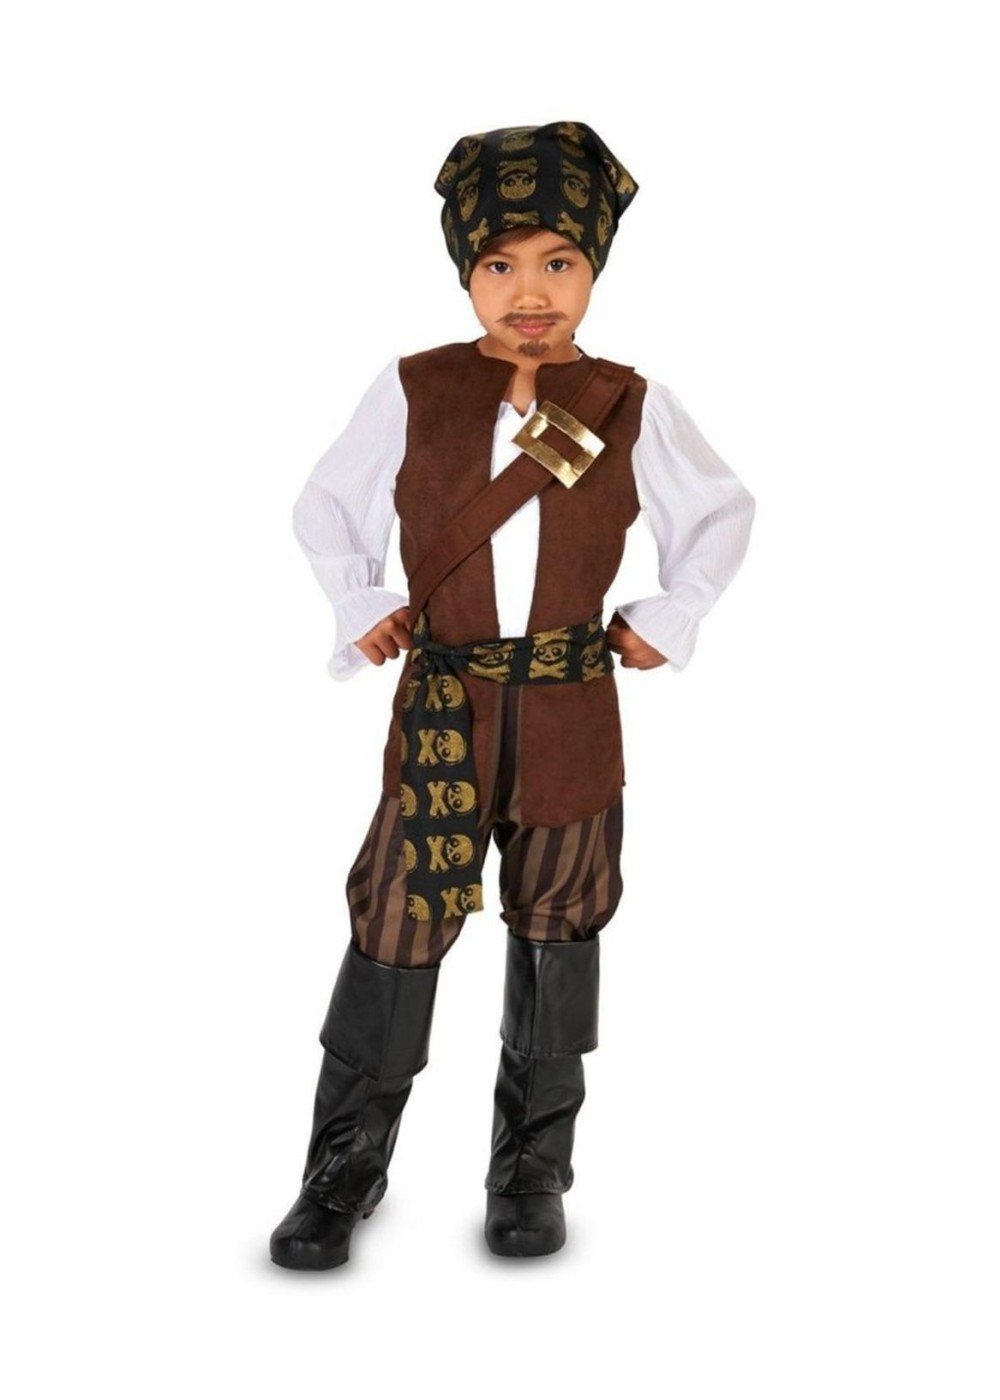 Any kid who dreams of a pirate's life will love our selection of Child Pirate Costumes. We have costumes for boys and for girls. They come in sizes from infant through teen. Your child can portray a specific TV or movie character, or create a unique one. Jack Sparrow, Angelica, Elizabeth Swann or Jake of Neverland. Blackbeard. Davy Jones.